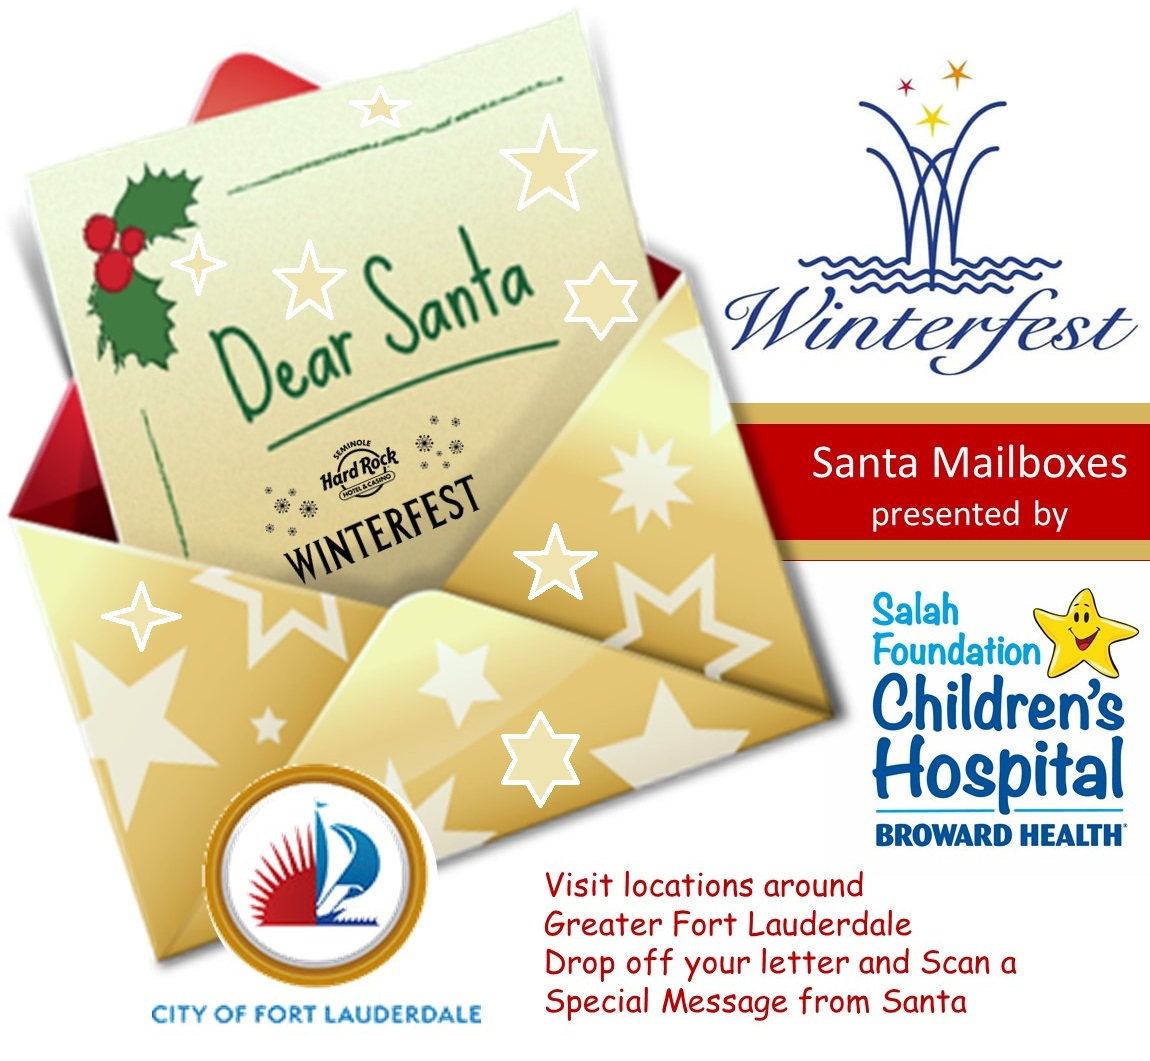 Poster for the Winterfest Santa Mailboxes Holiday Post